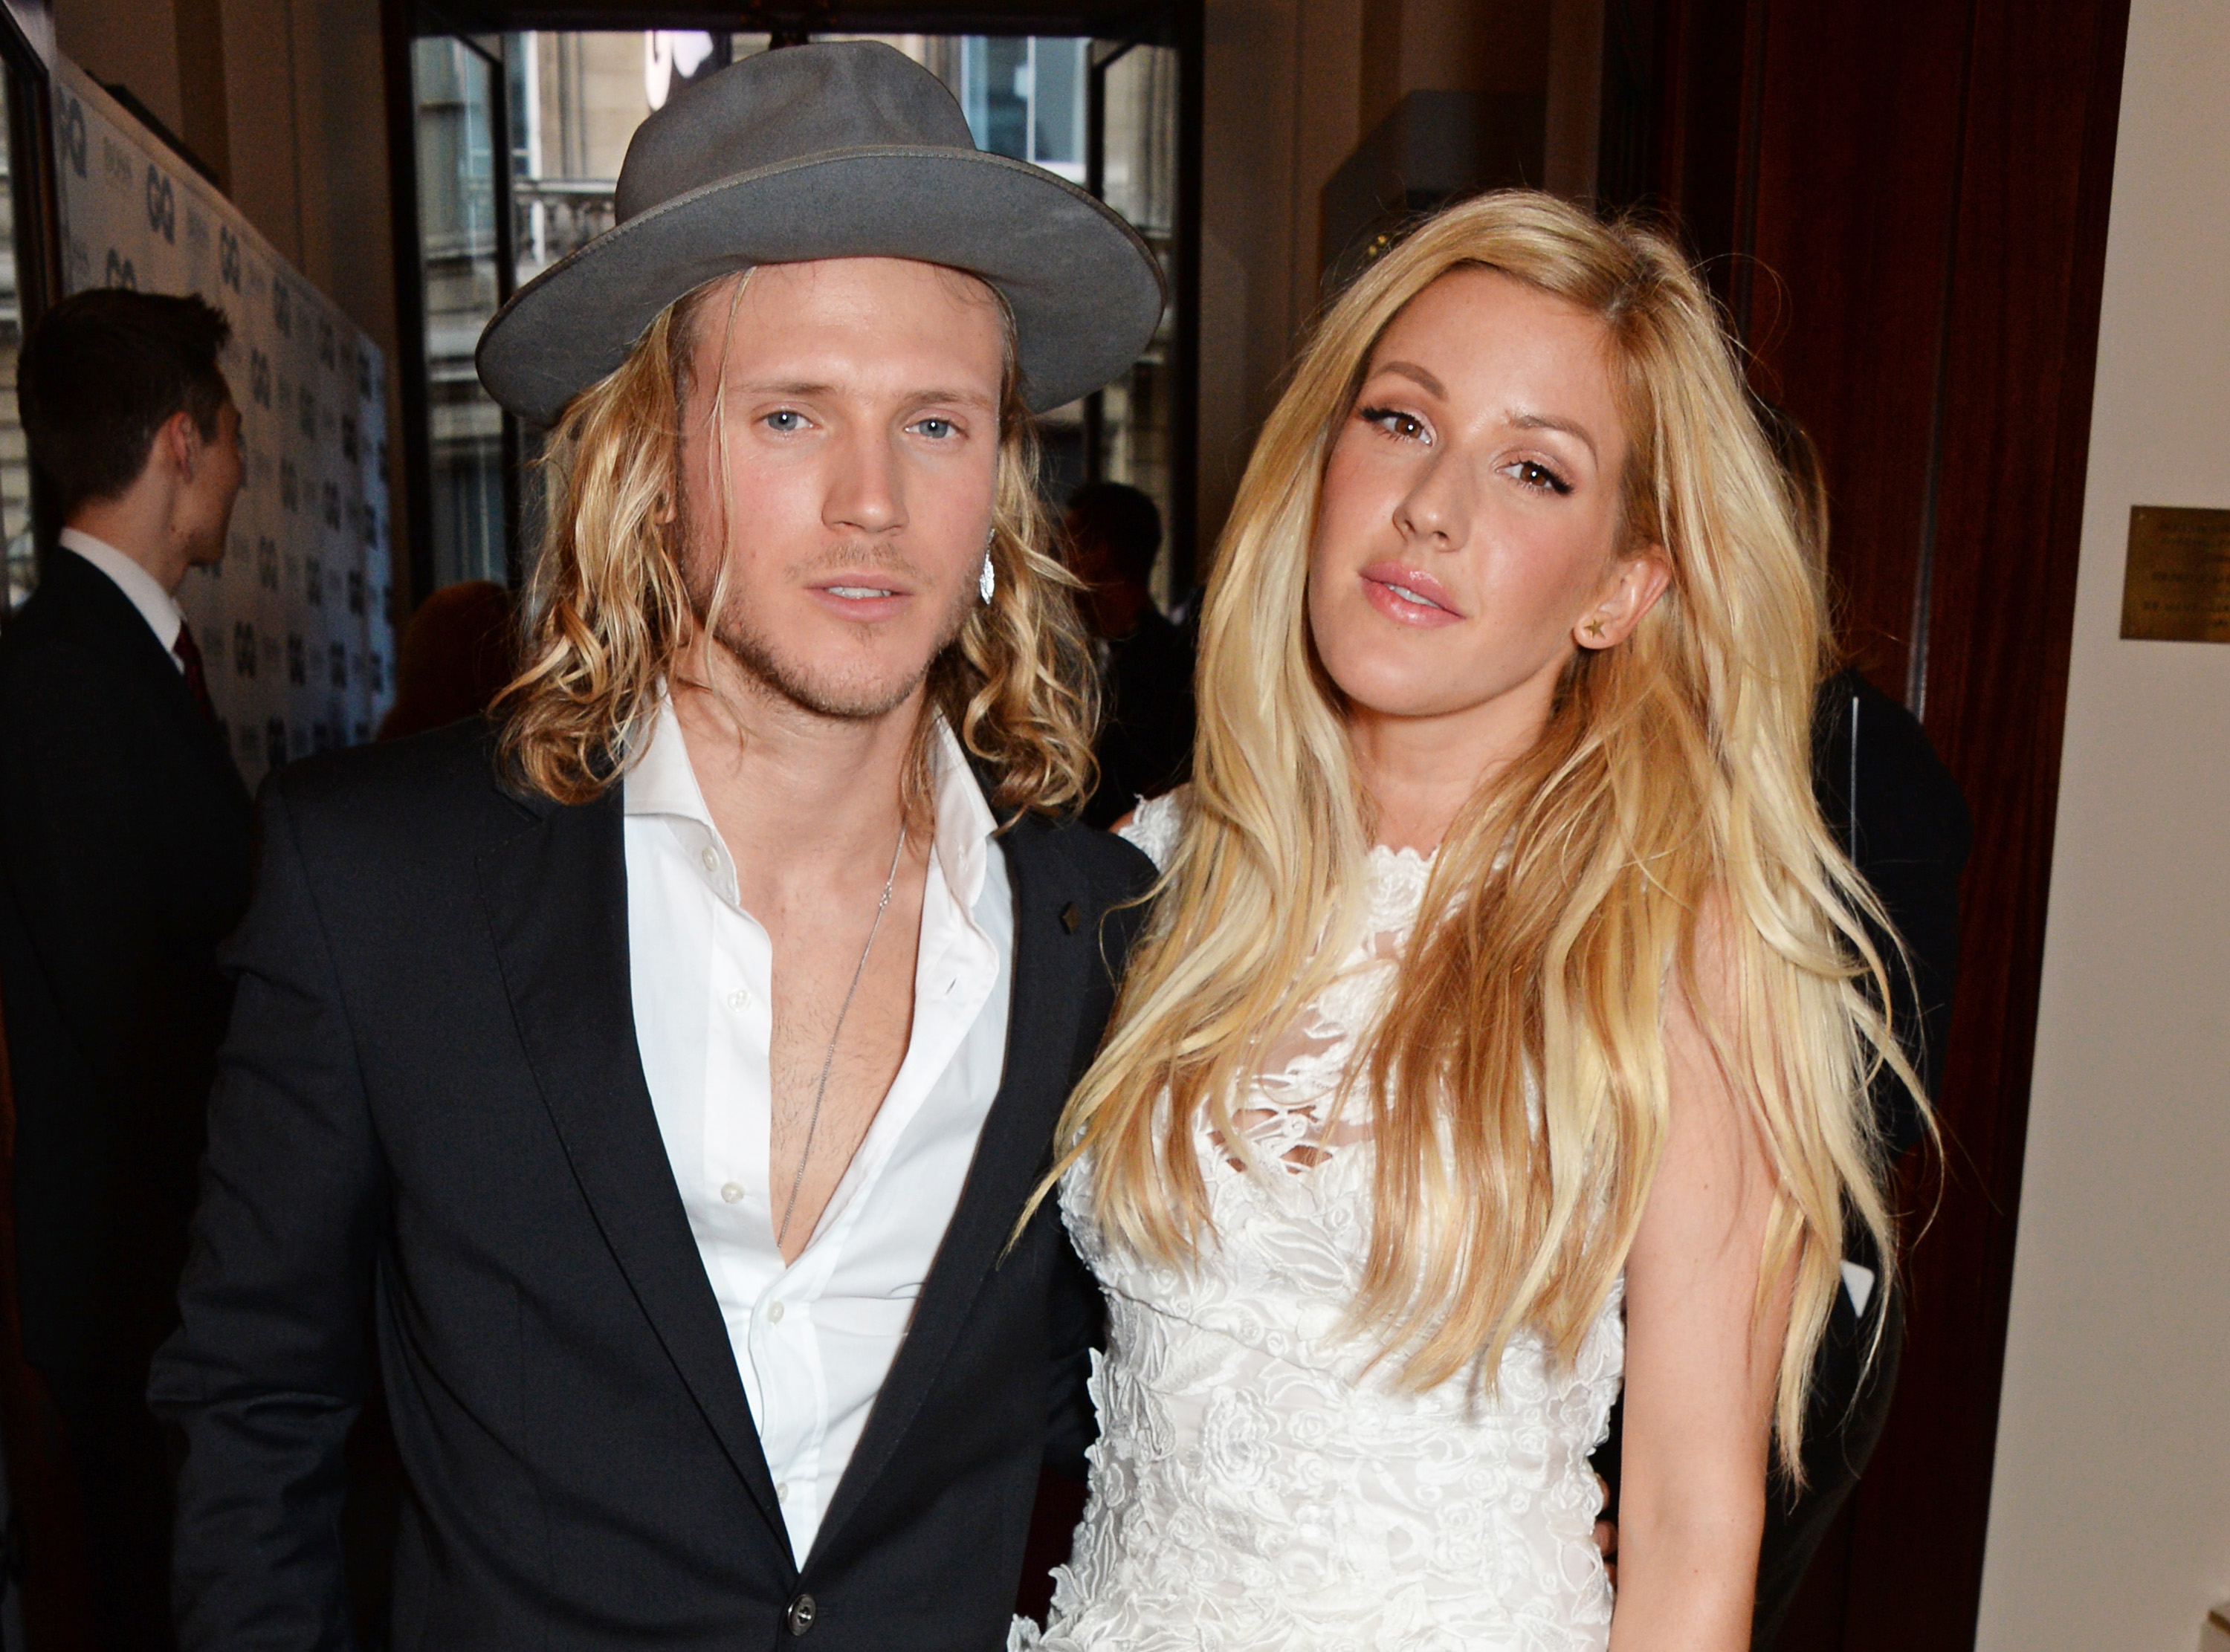 Ellie Goulding says she and Dougie Poynter get mistaken for brother and sister